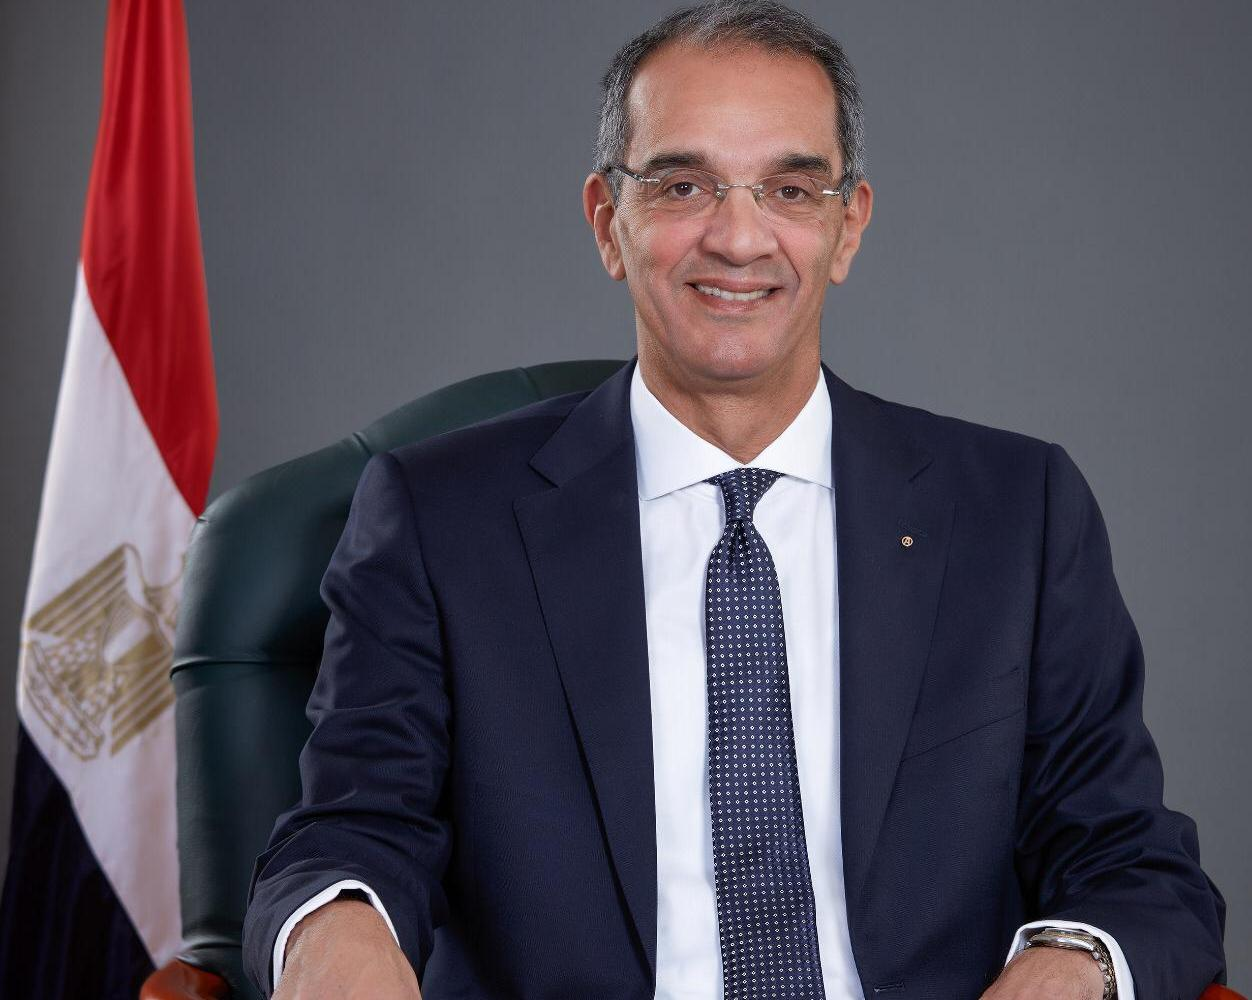 Egypt signs agreements with international companies to implement artificial intelligence projects